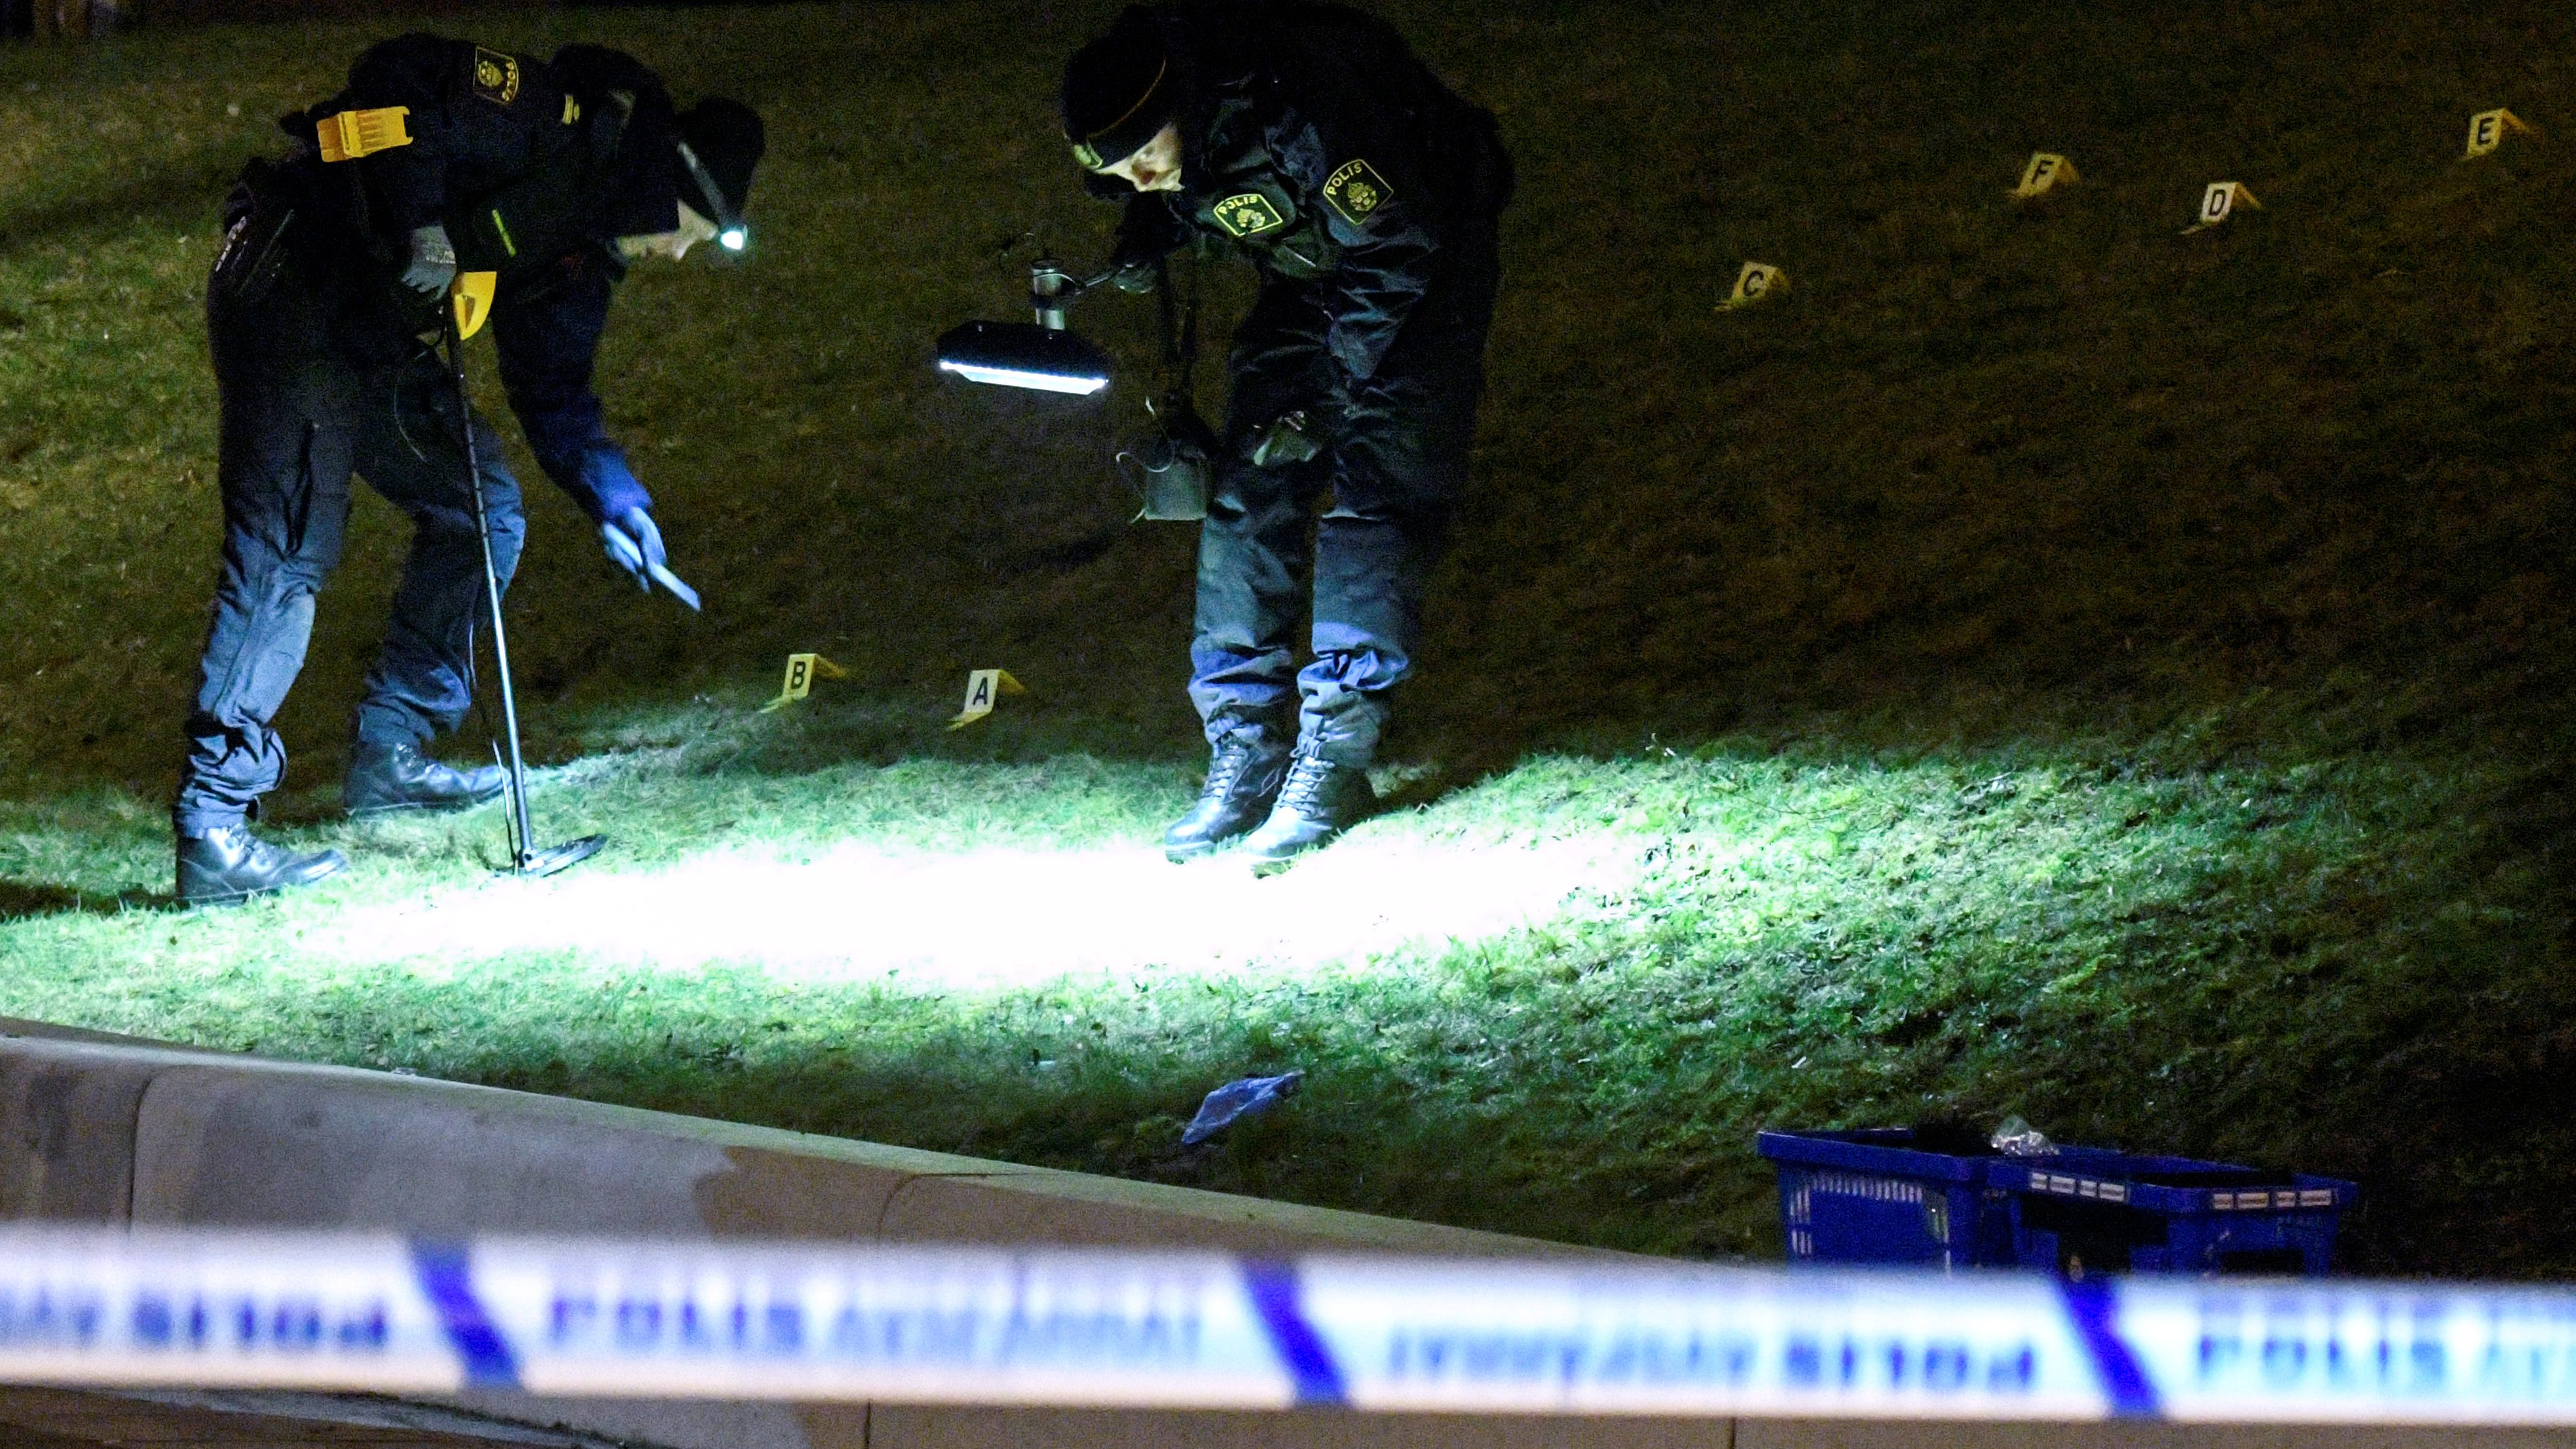 Police crime scene investigators work next to a bus stop in the Rosengard district in Malmo